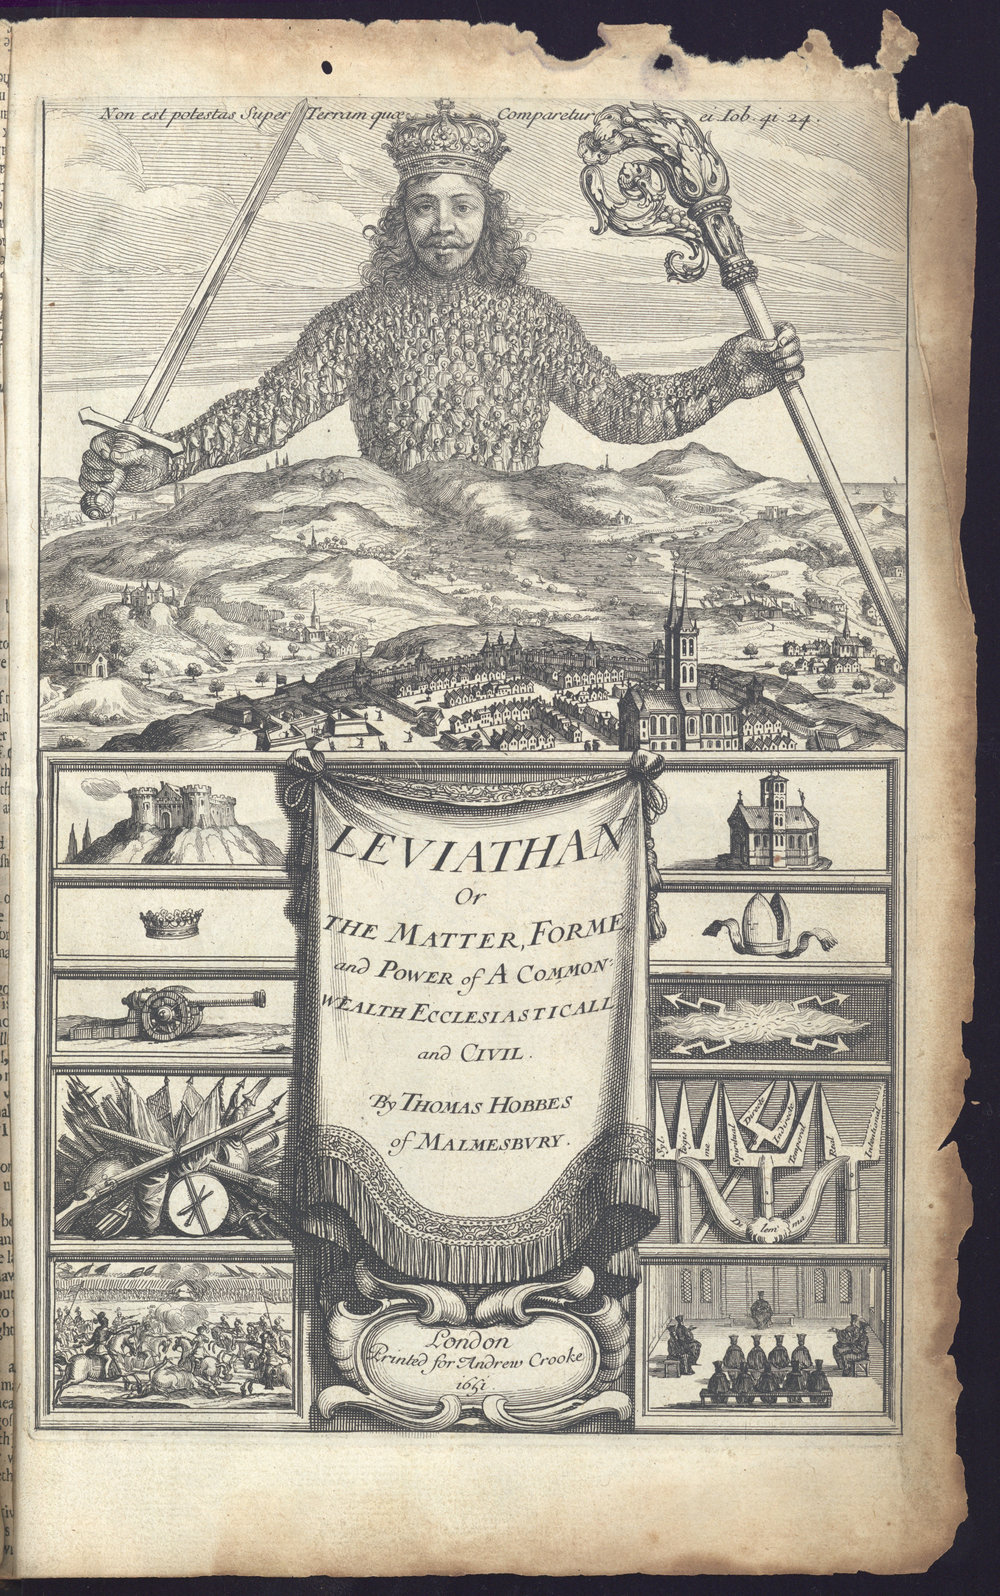 Thomas Hobbes,  Leviathan  (London, 1651). Reproduced with permission from the Robinson Library, University of Newcastle. Special Collections, Bainbrigg (BAI 1651 HOB). With thanks to Sam Petty.